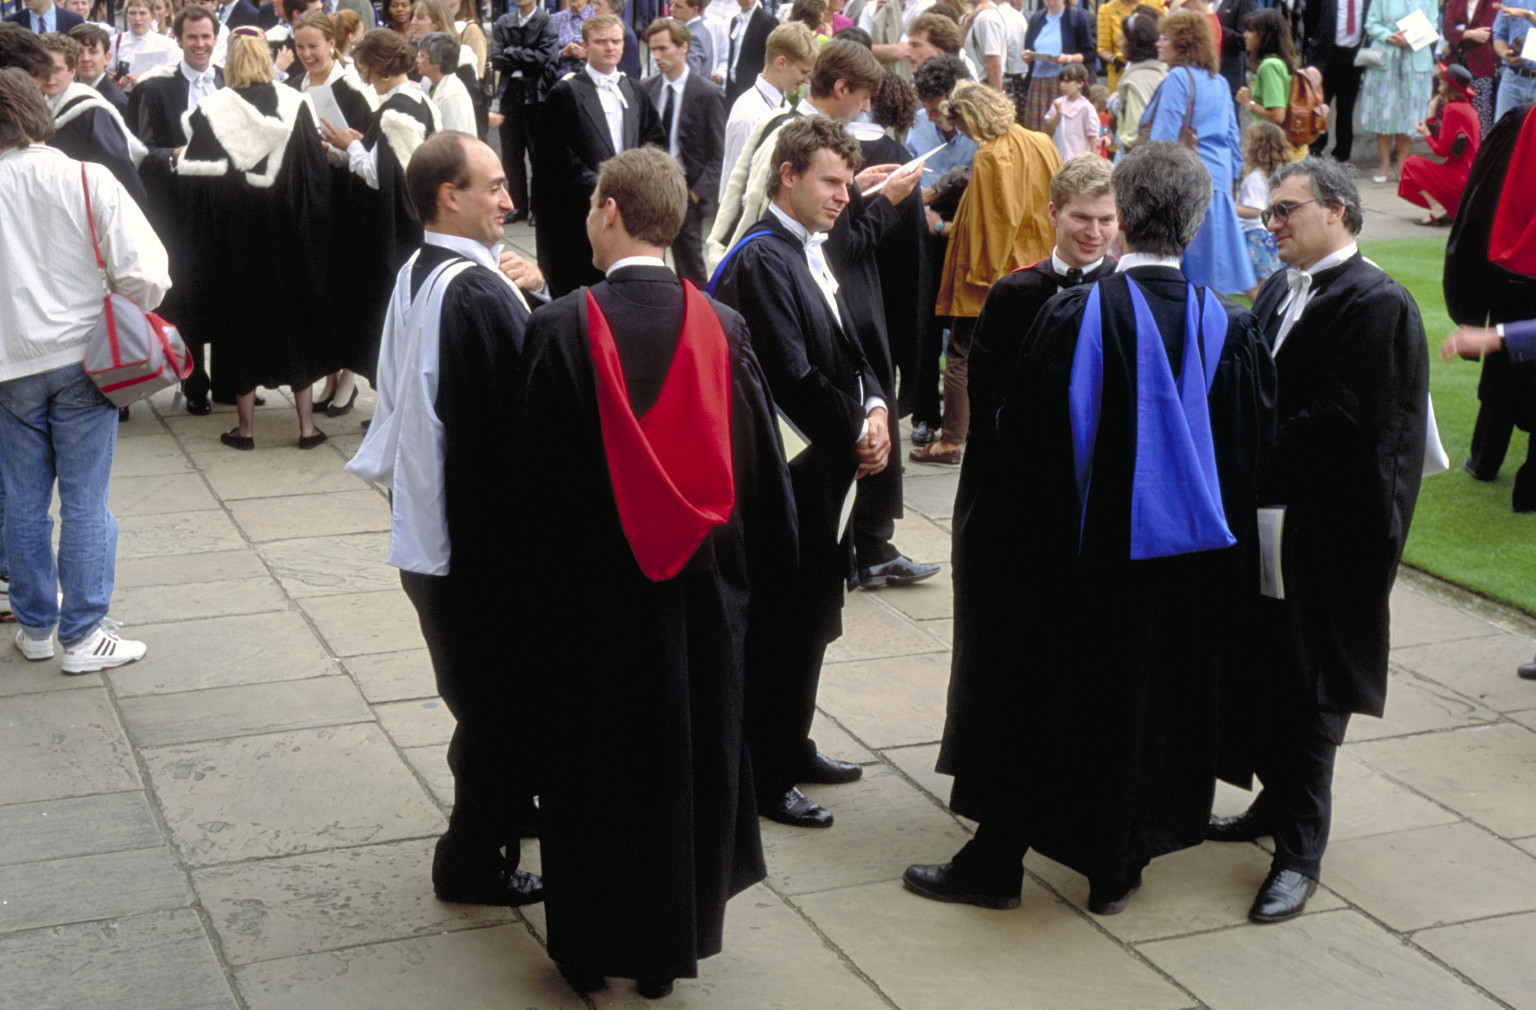 male cambridge university students can graduate in skirts